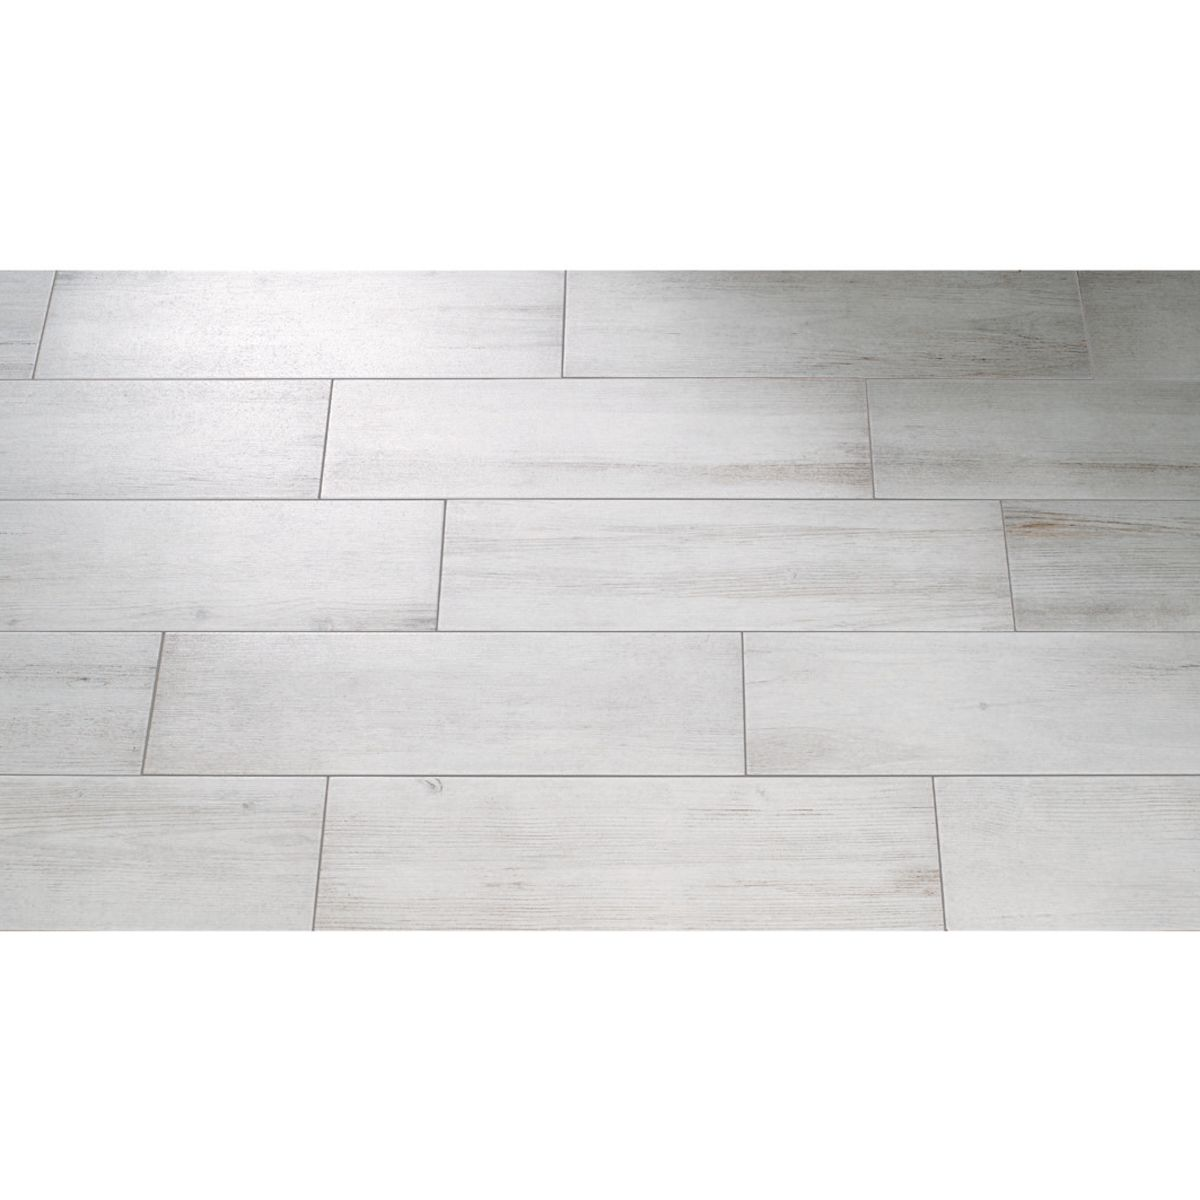 Pavimenti in legno per esterni leroy merlin trendy i for Battiscopa bianco leroy merlin